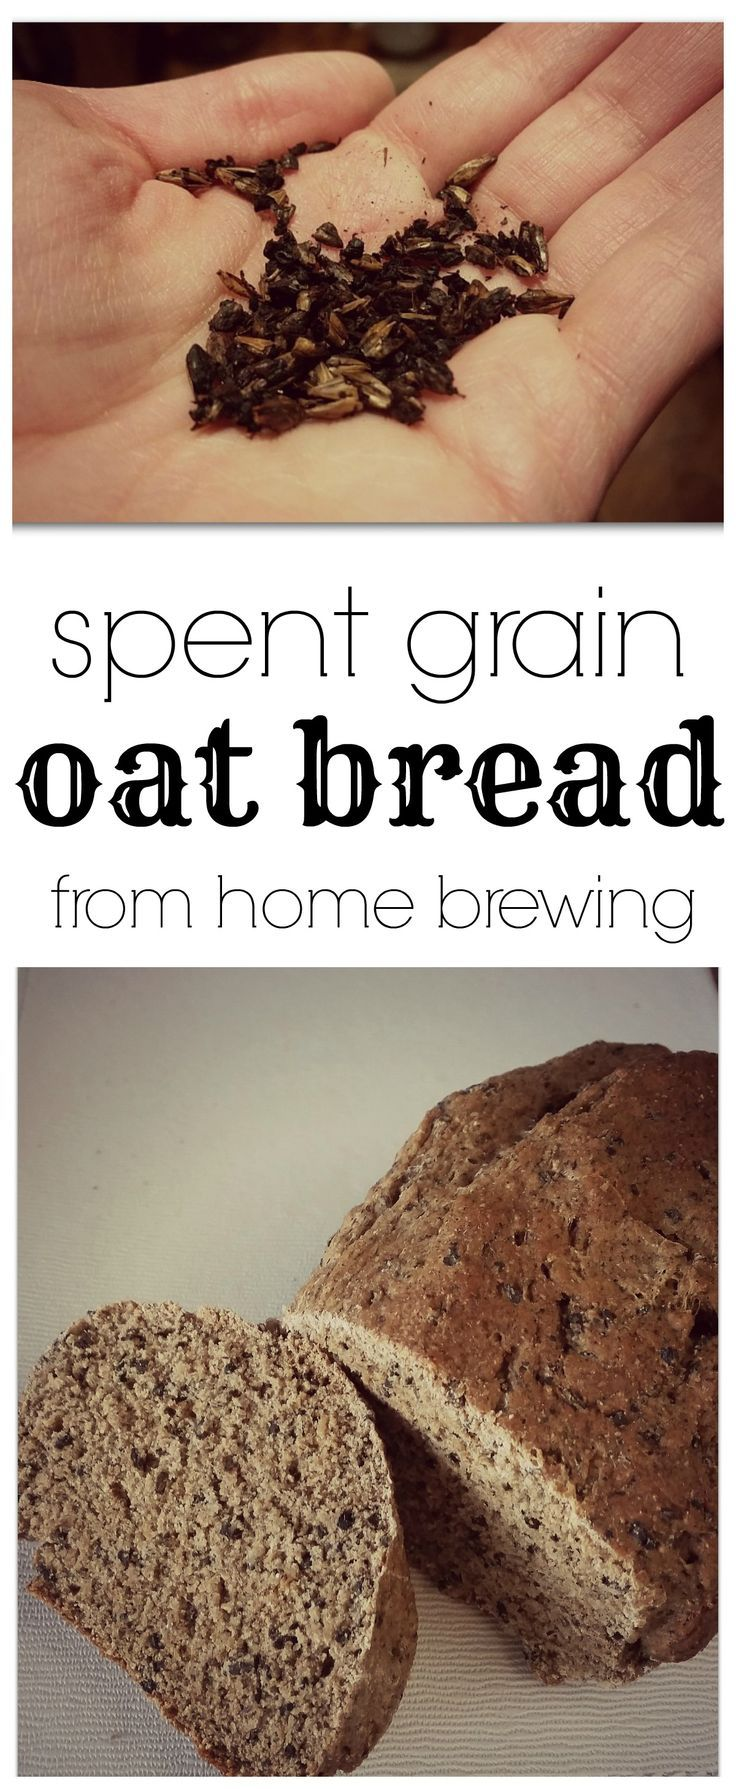 Perfect for home brewing and using those spent grains - Spent Grain Oat Bread!